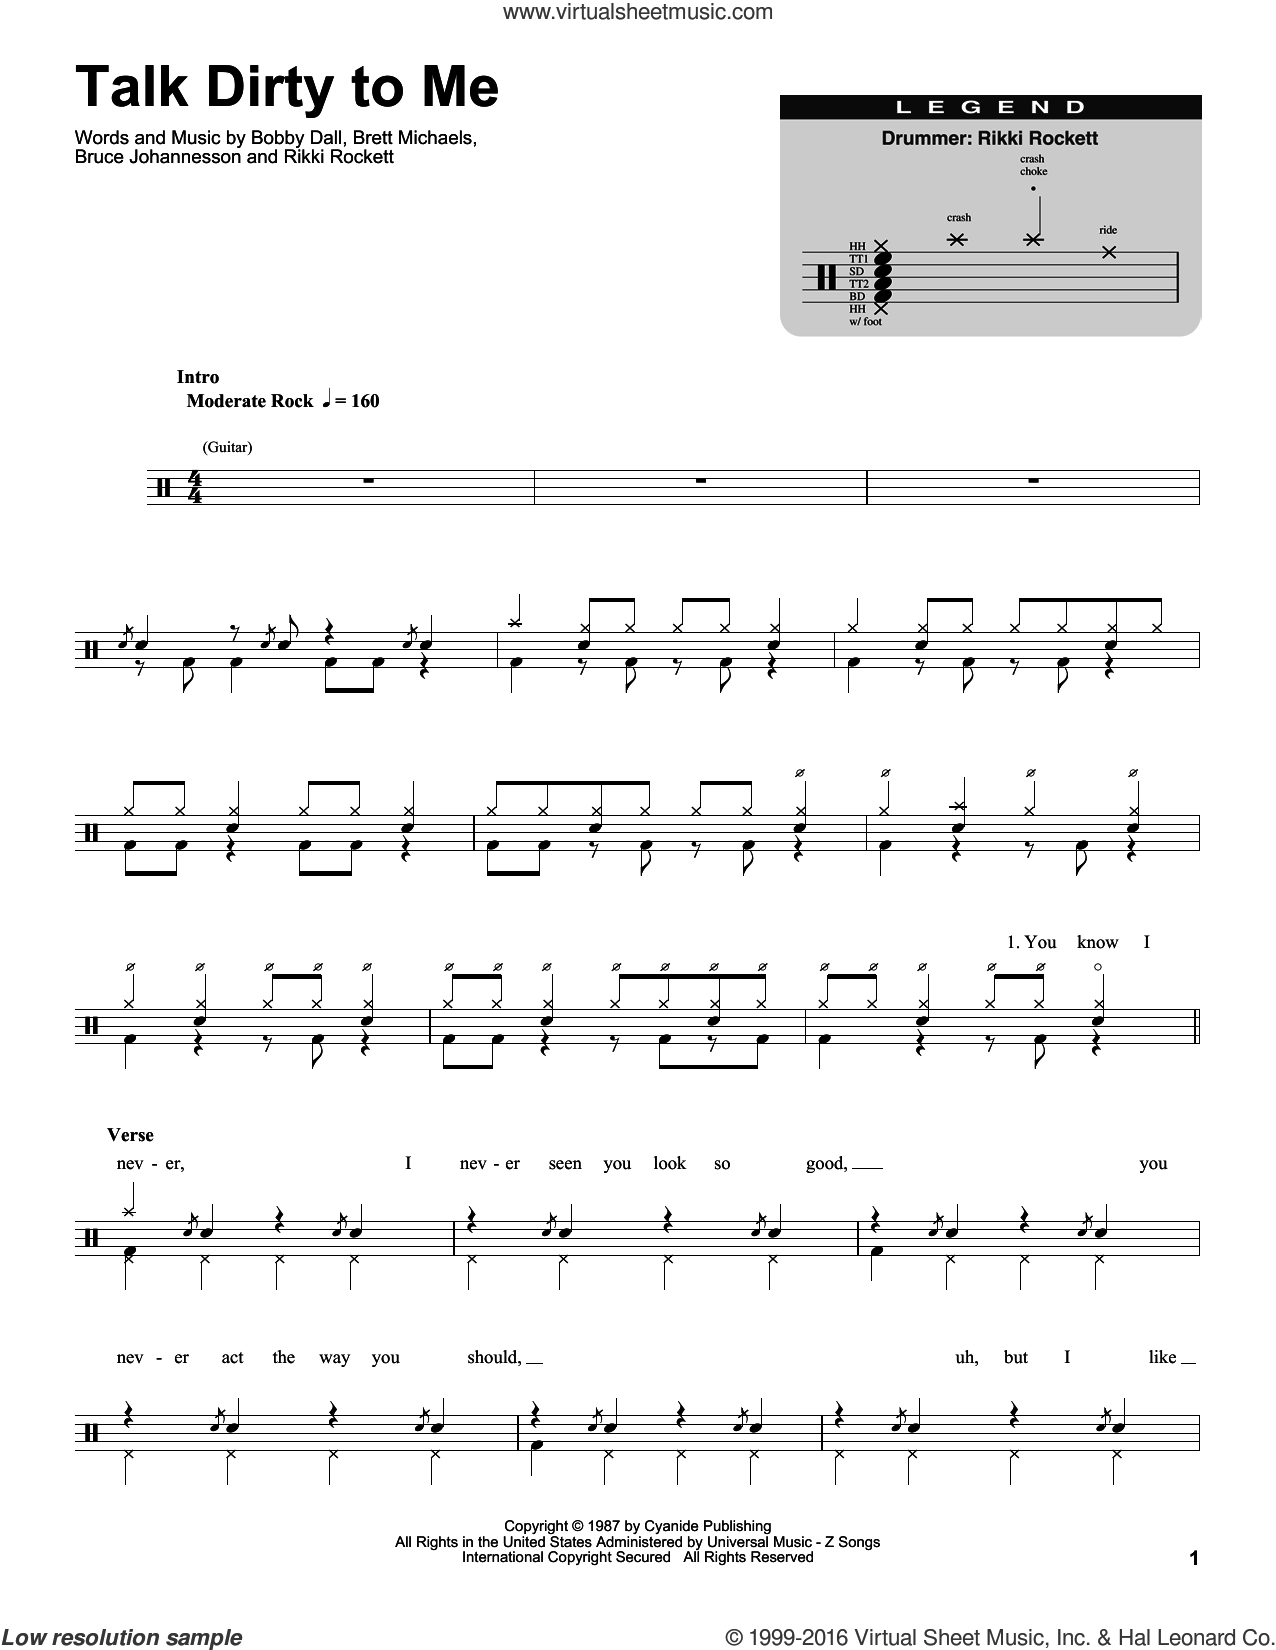 Talk Dirty To Me sheet music for drums by Rikki Rockett